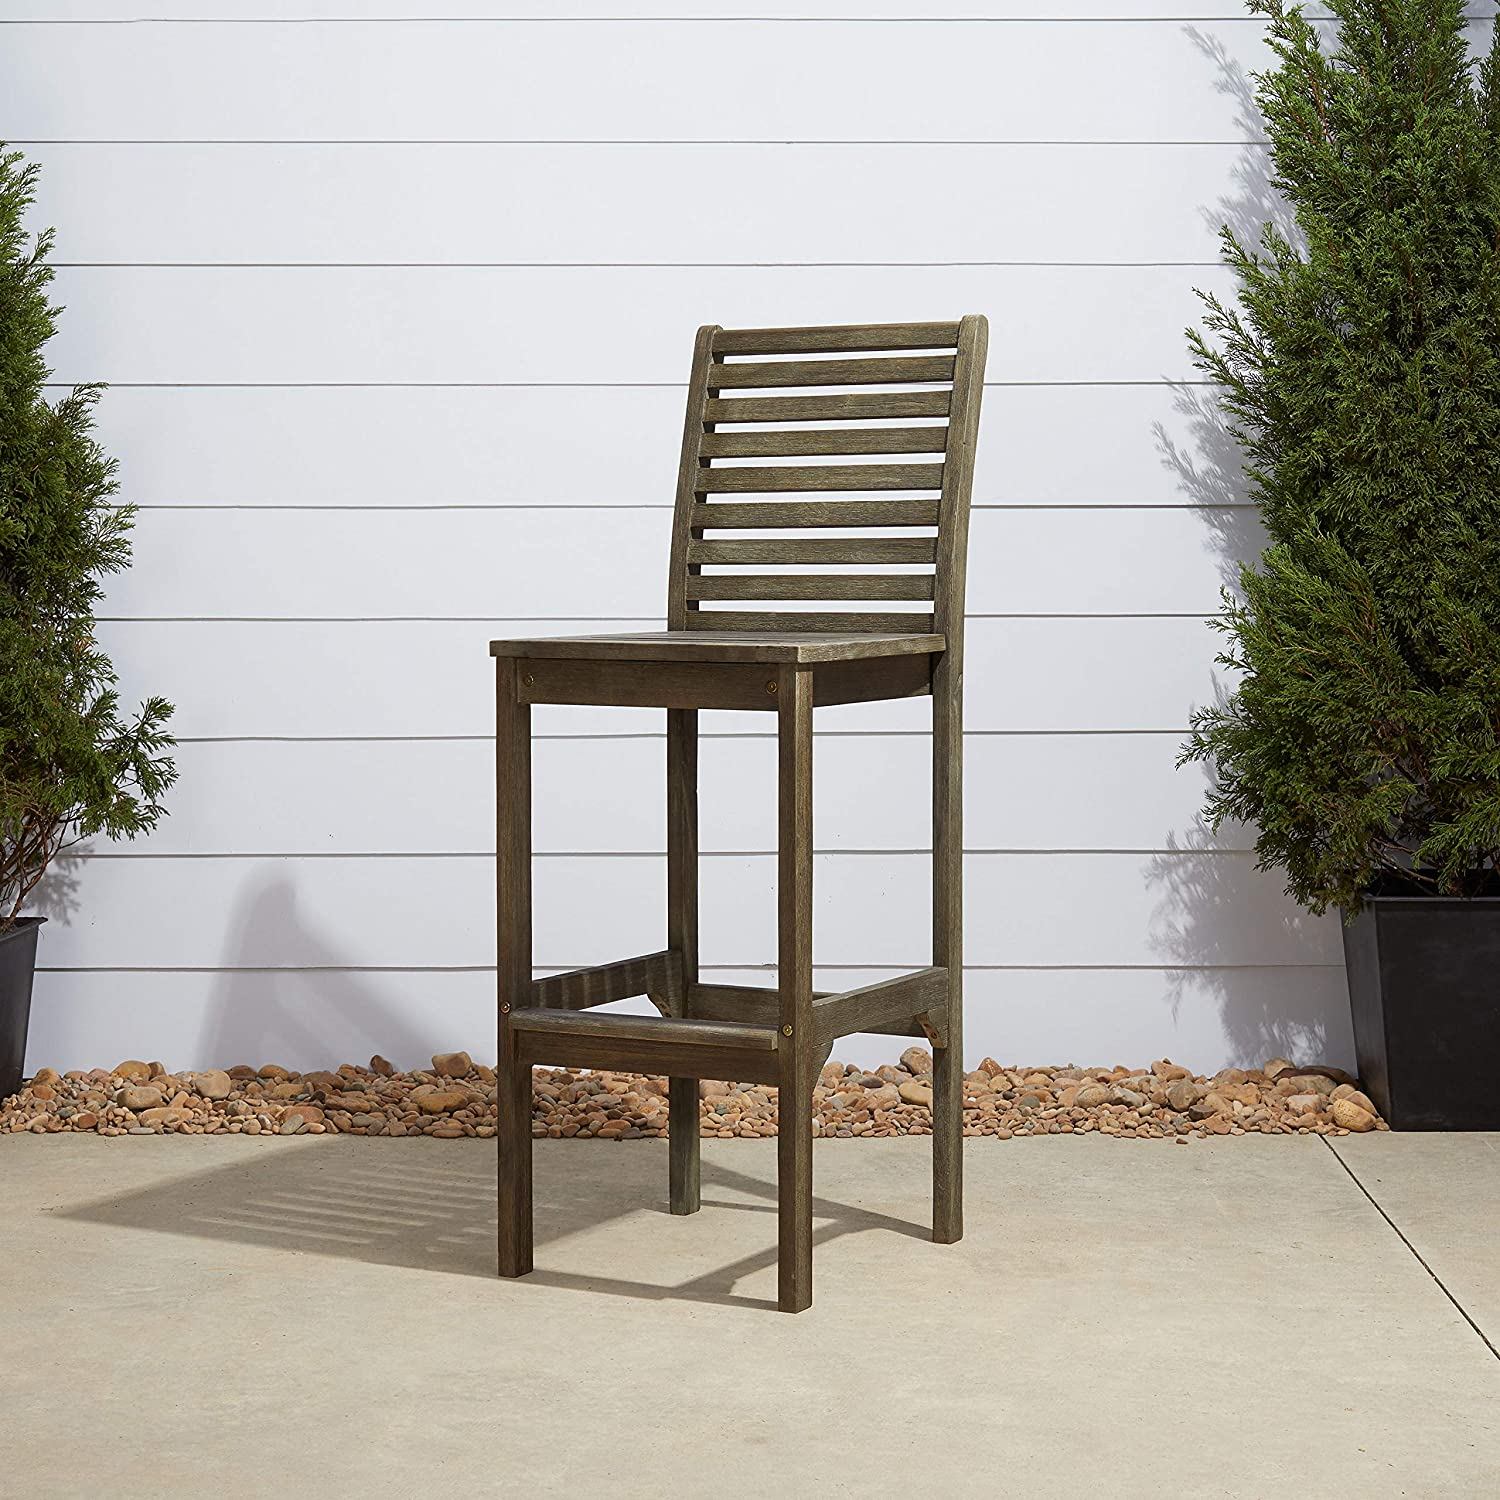 Vifah V1354 Renaissance Outdoor Hand-Scraped Hardwood Bar Chair